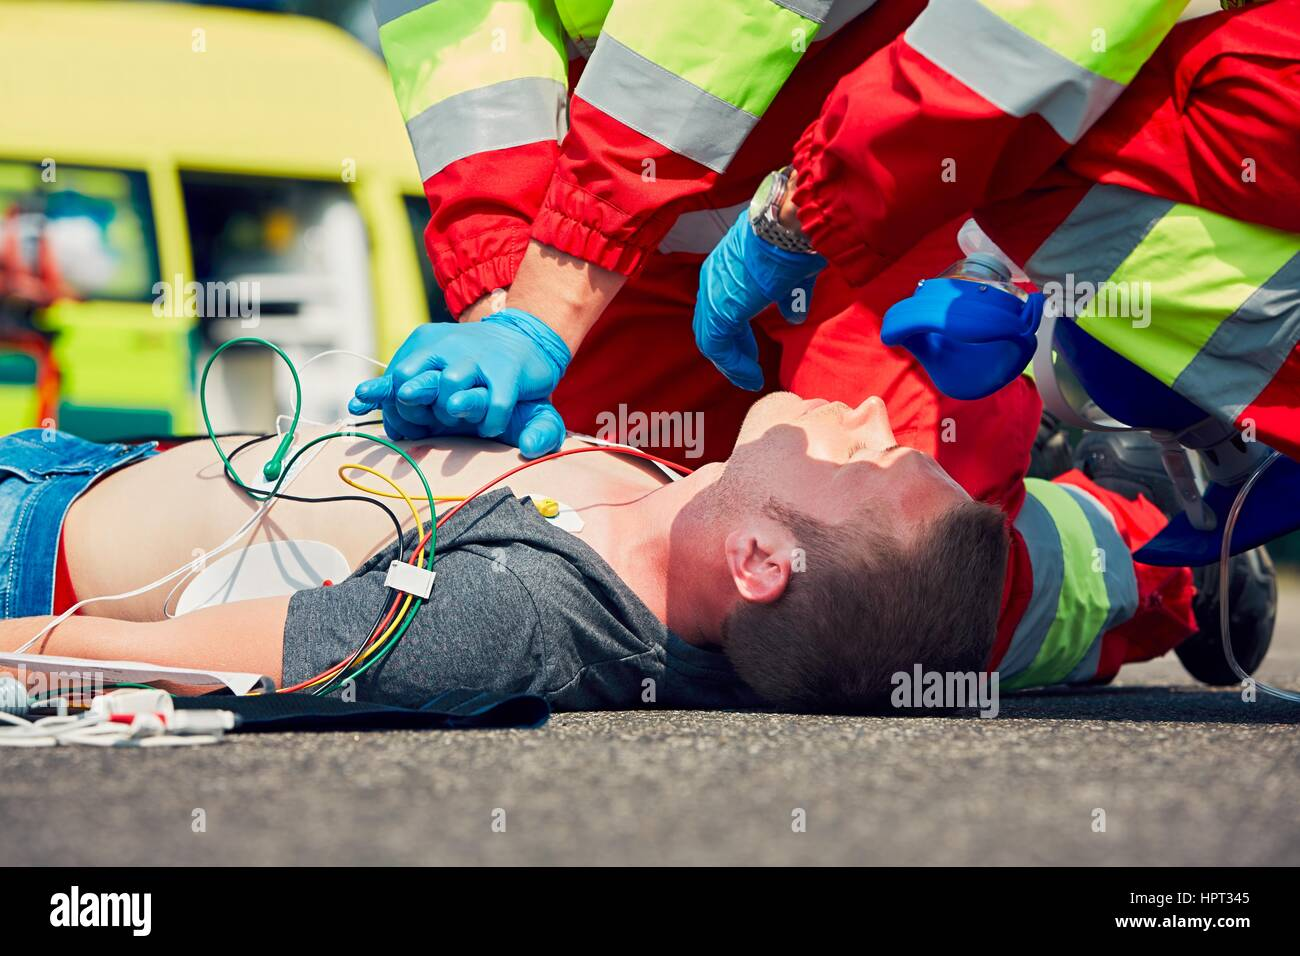 Cardiopulmonary resuscitation. Rescue team (doctor and a paramedic) resuscitating the man on the street. - Stock Image